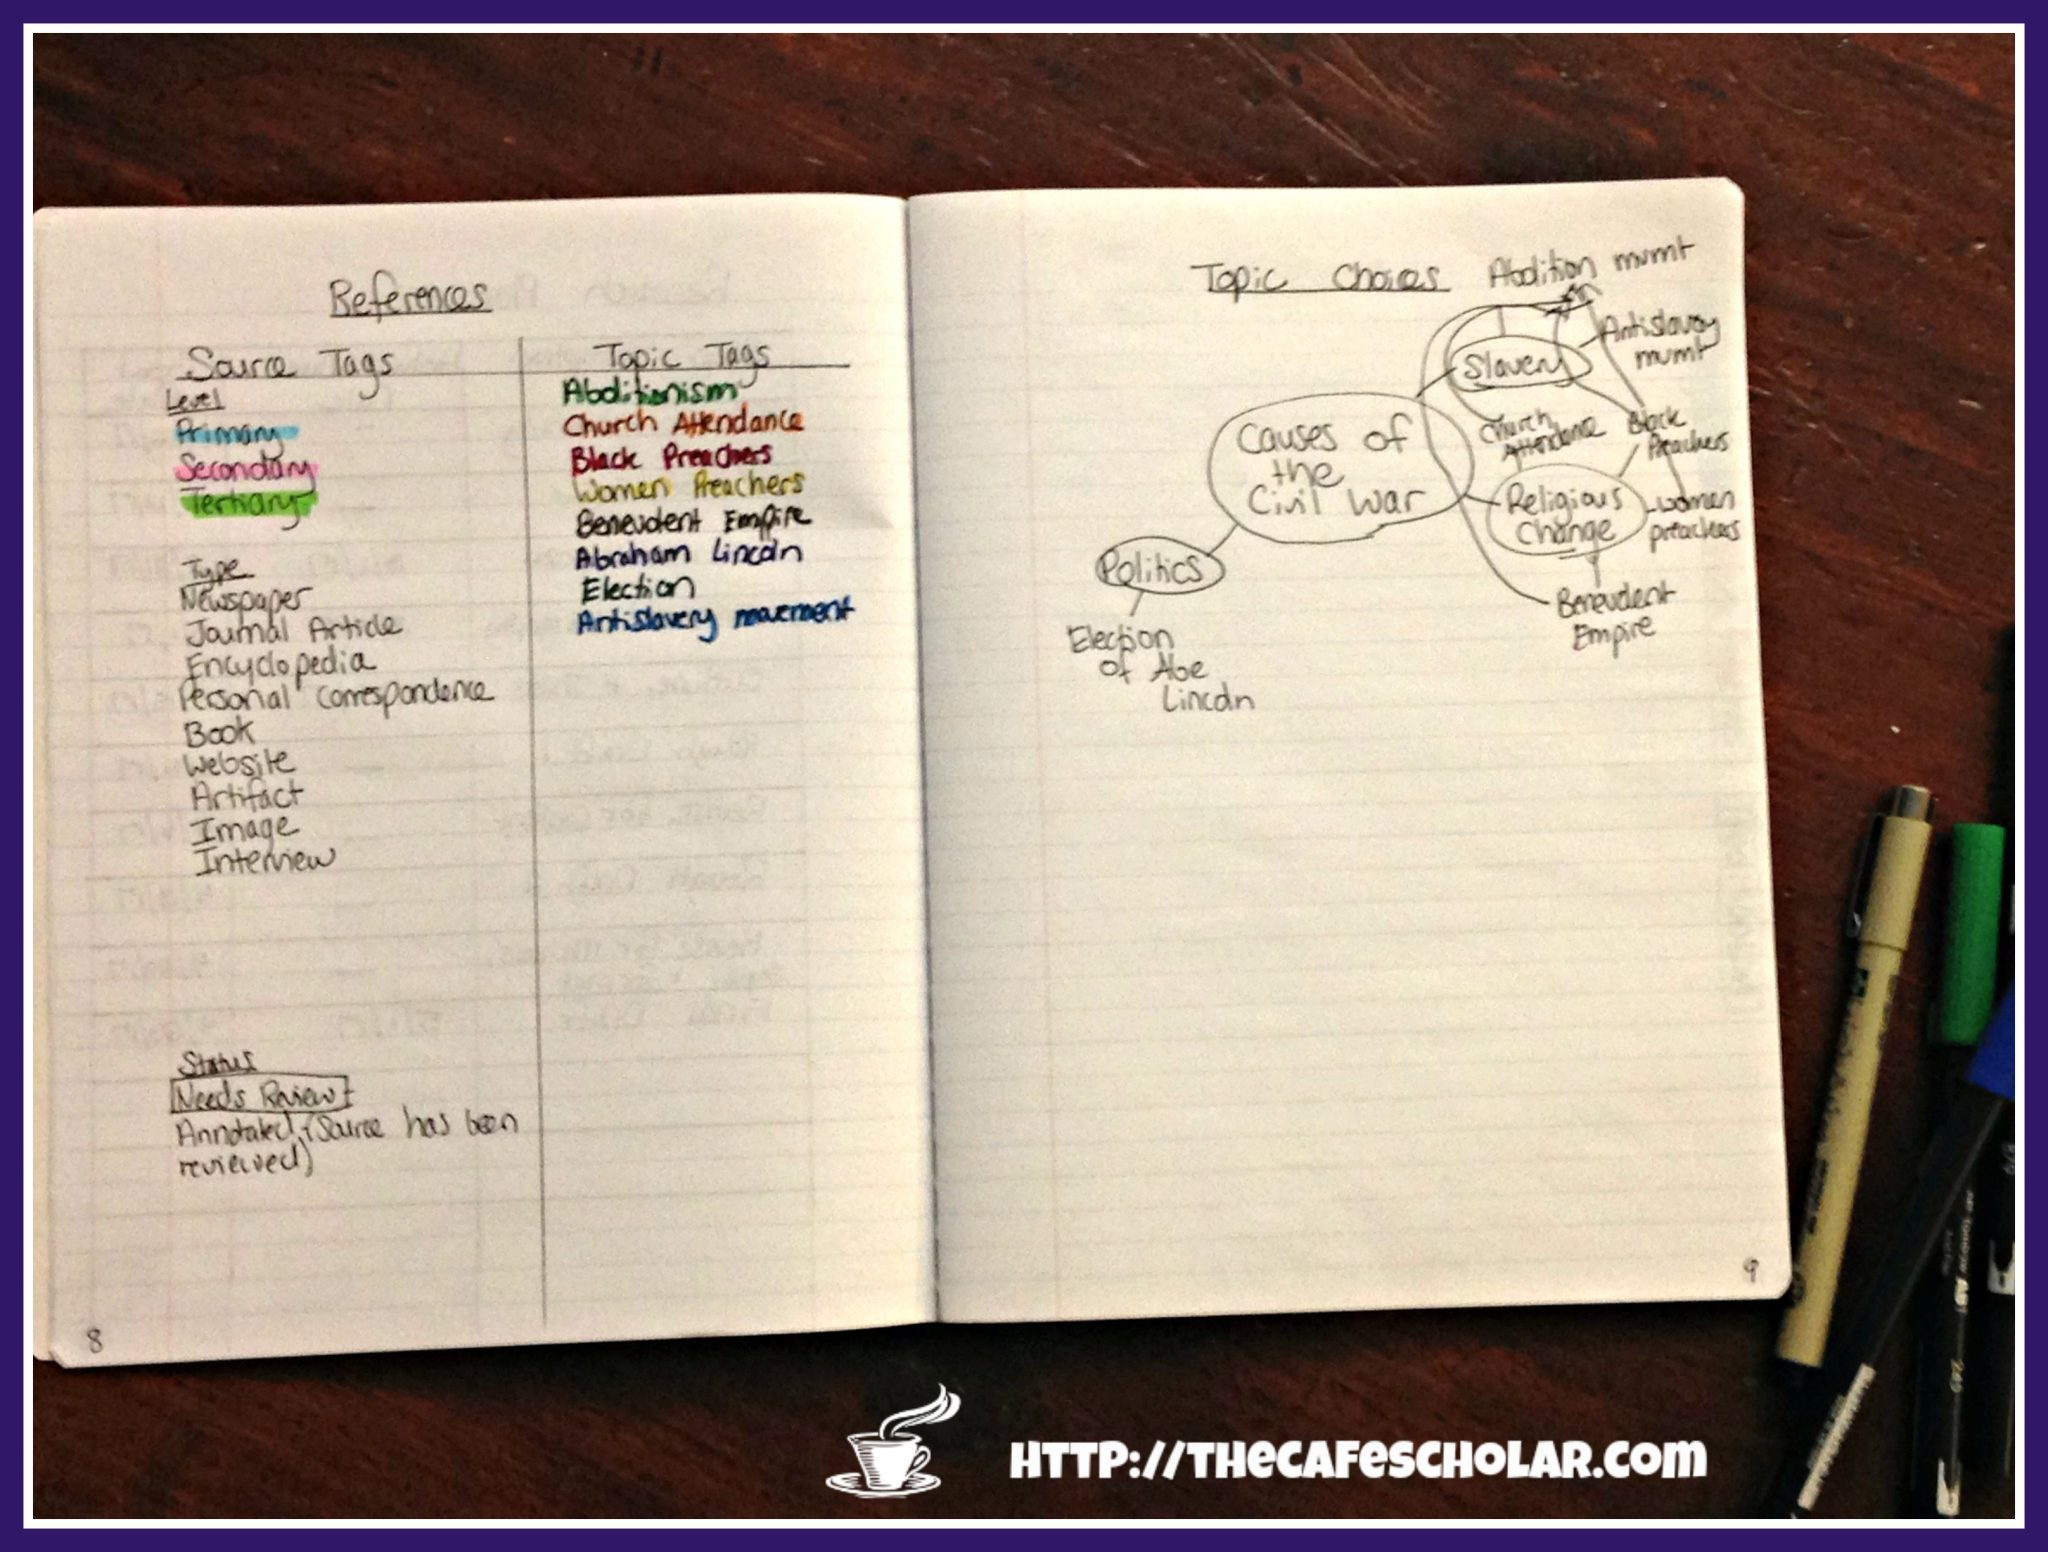 References and Tags for Research Notebook | The Cafe Scholar